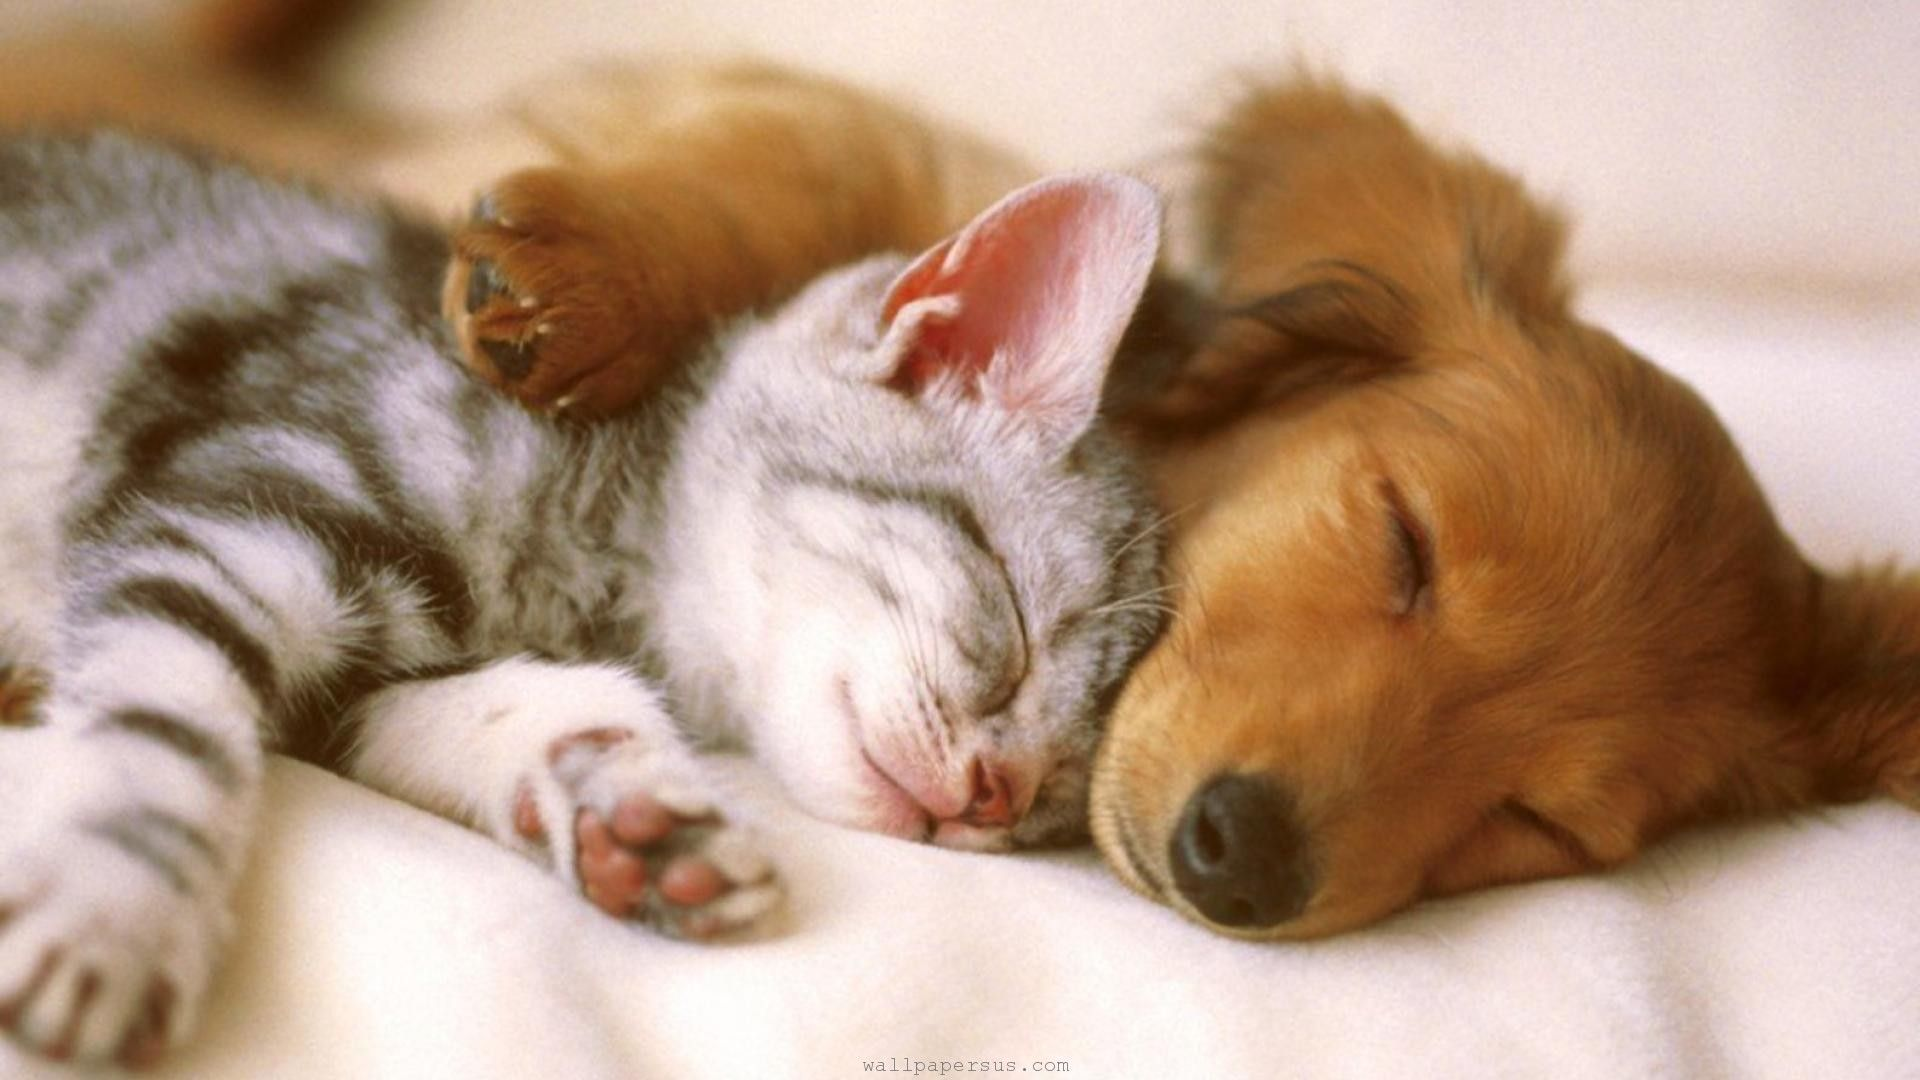 Wallpaper Puppies And Kittens